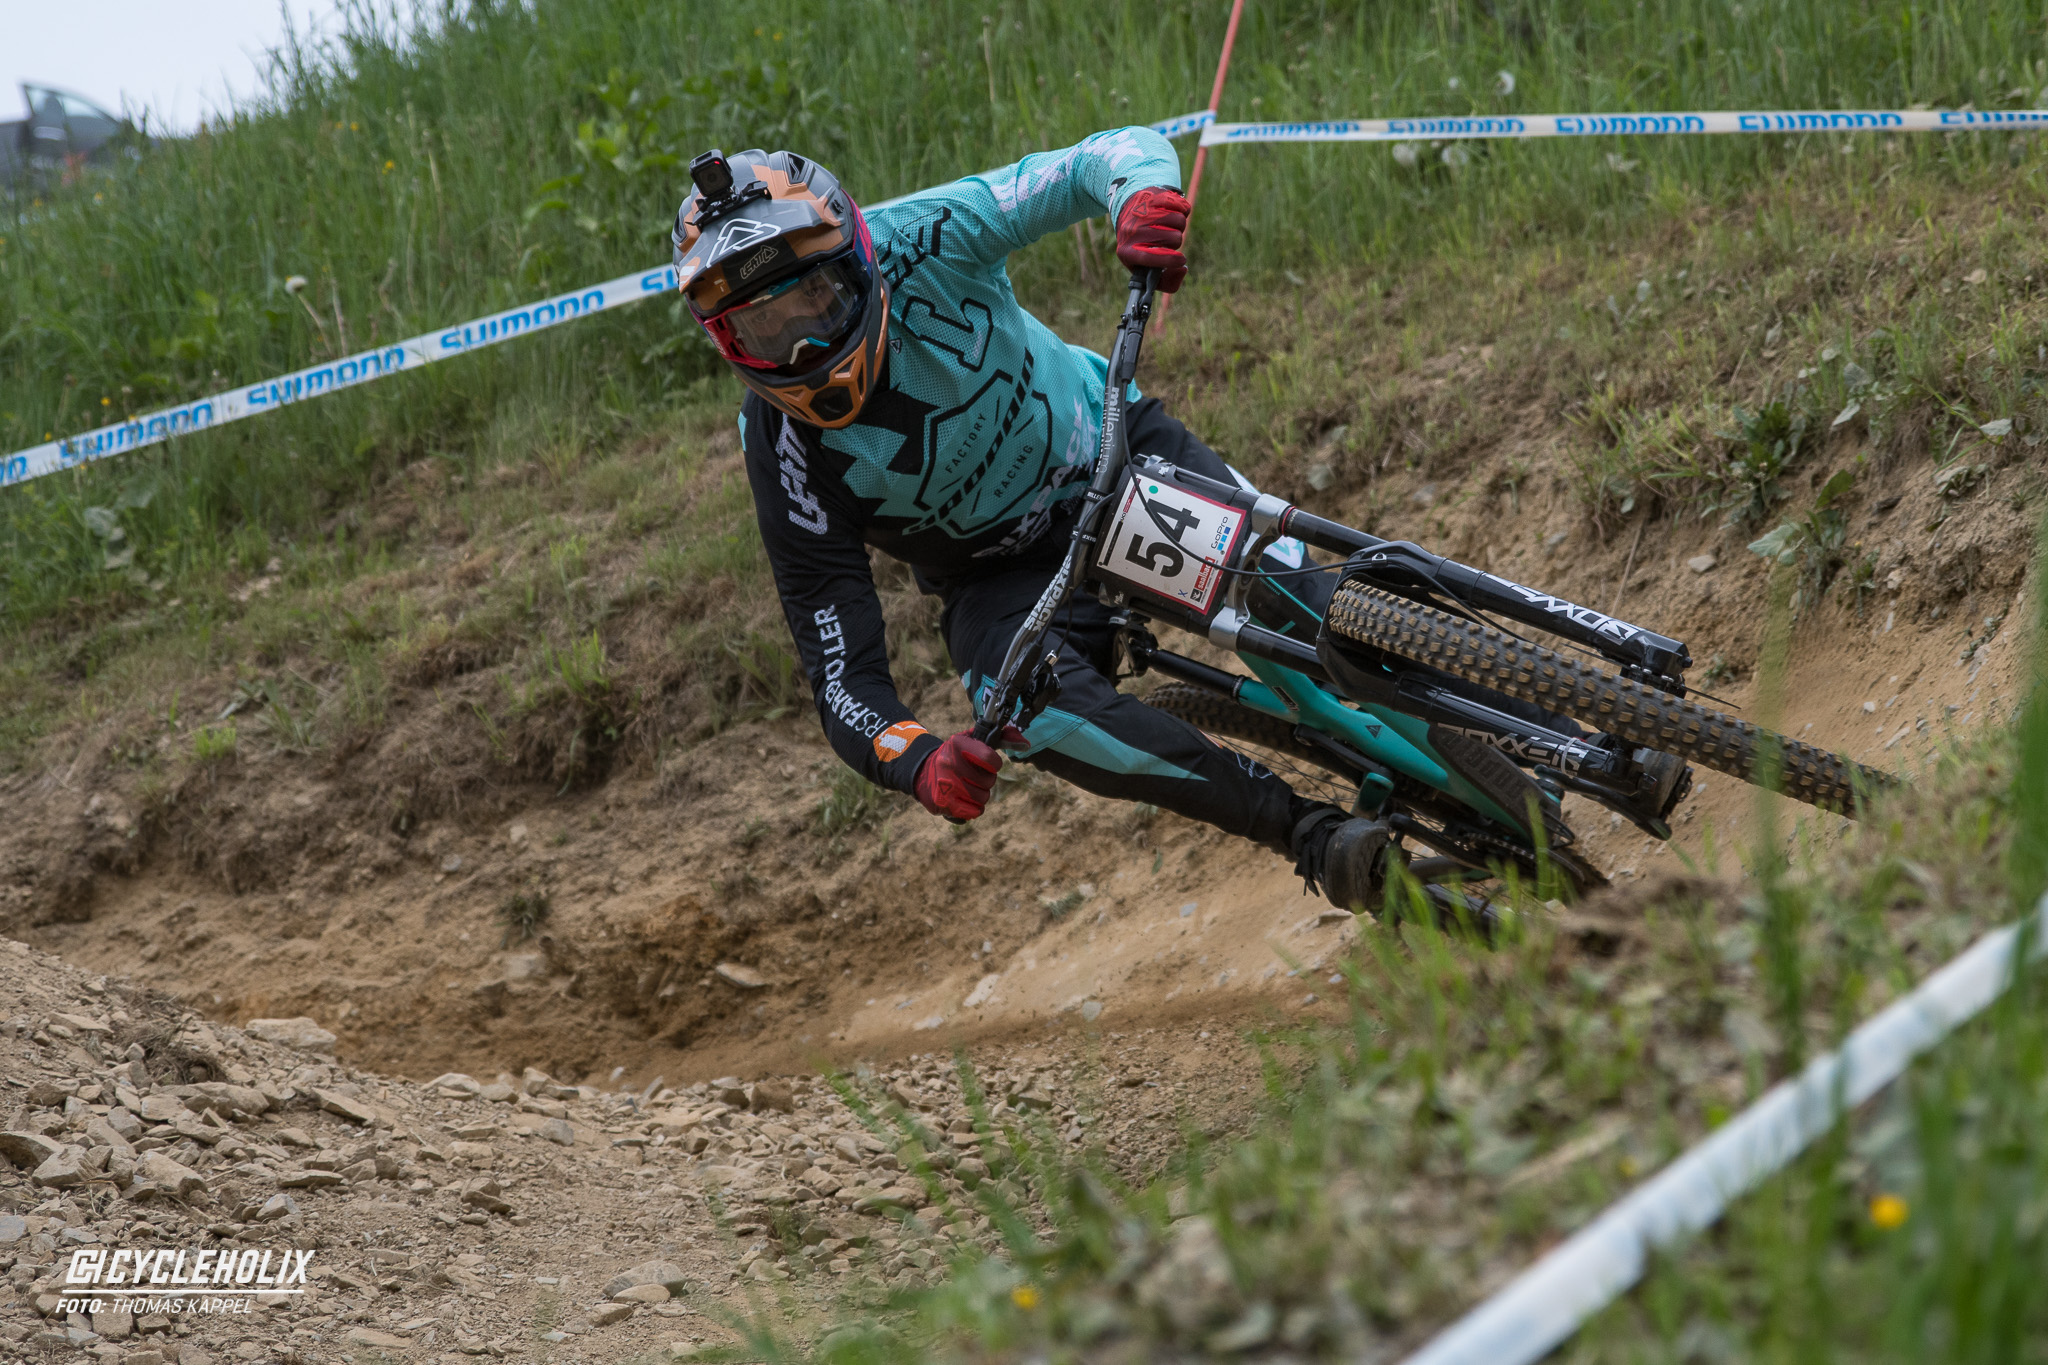 2019 Downhill Worldcup Leogang Finale Action QA 4 Cycleholix